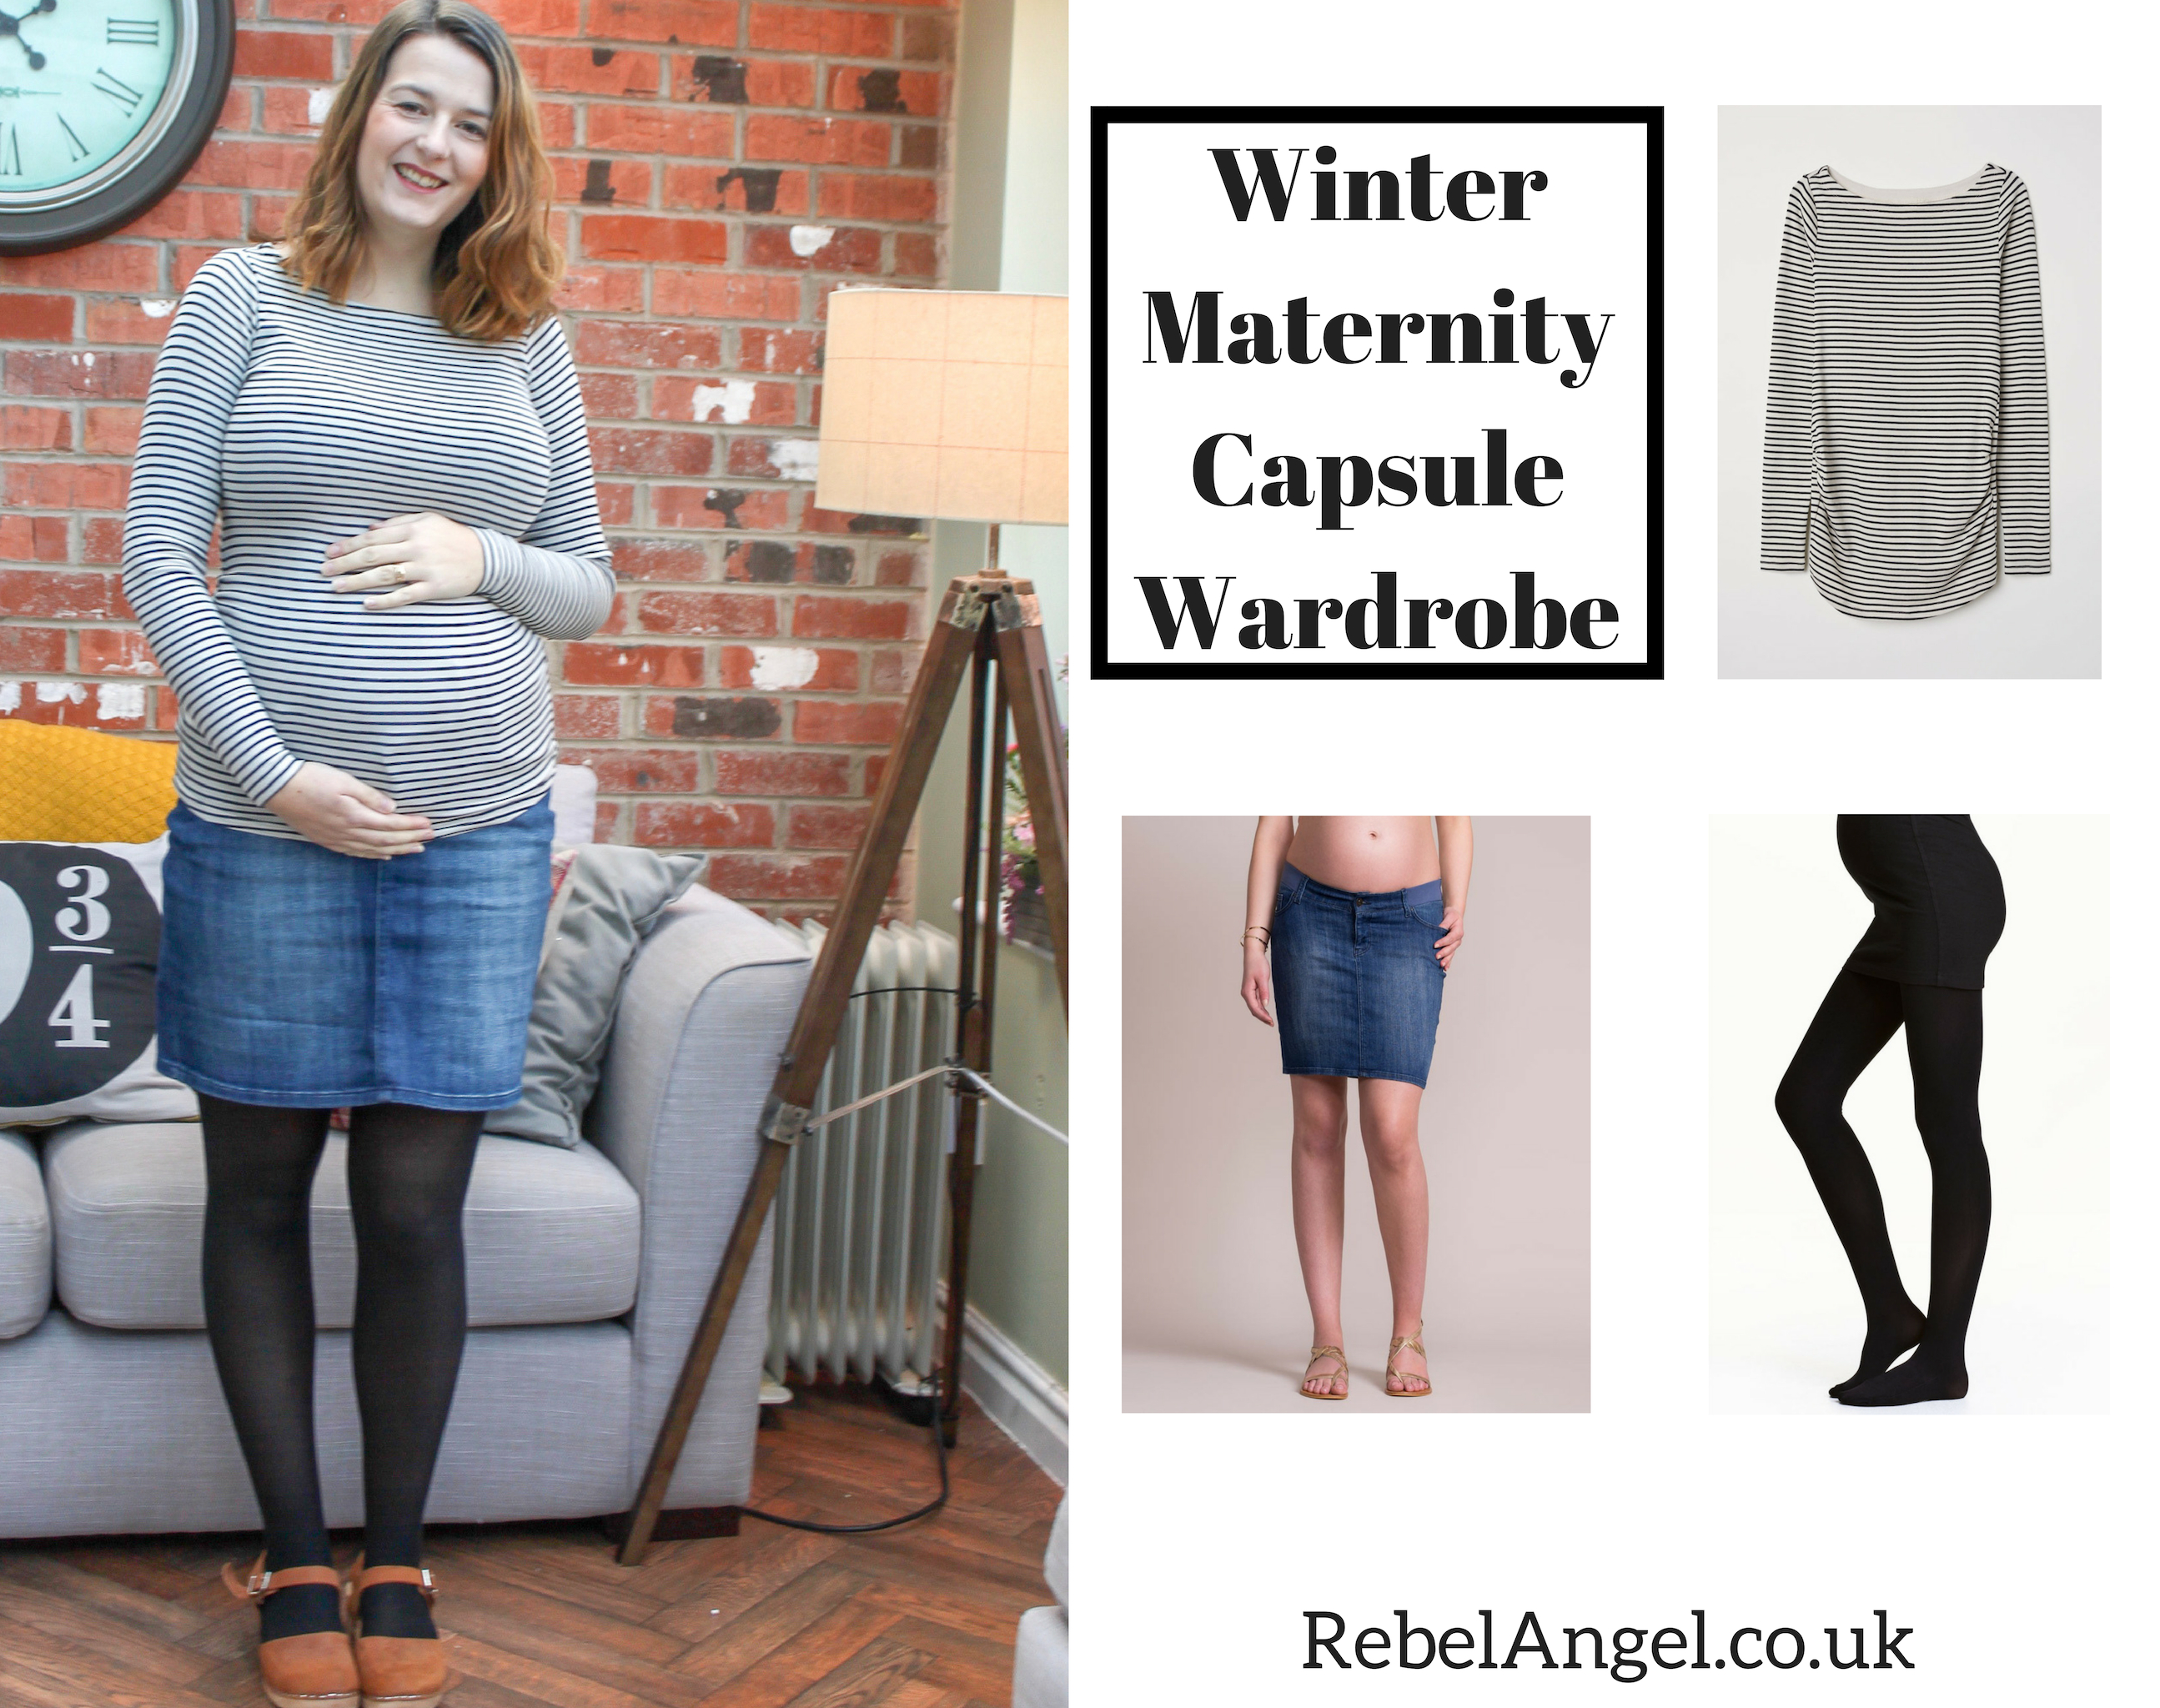 Winter Maternity Capsule Wardrobe - striped top and denim skirt